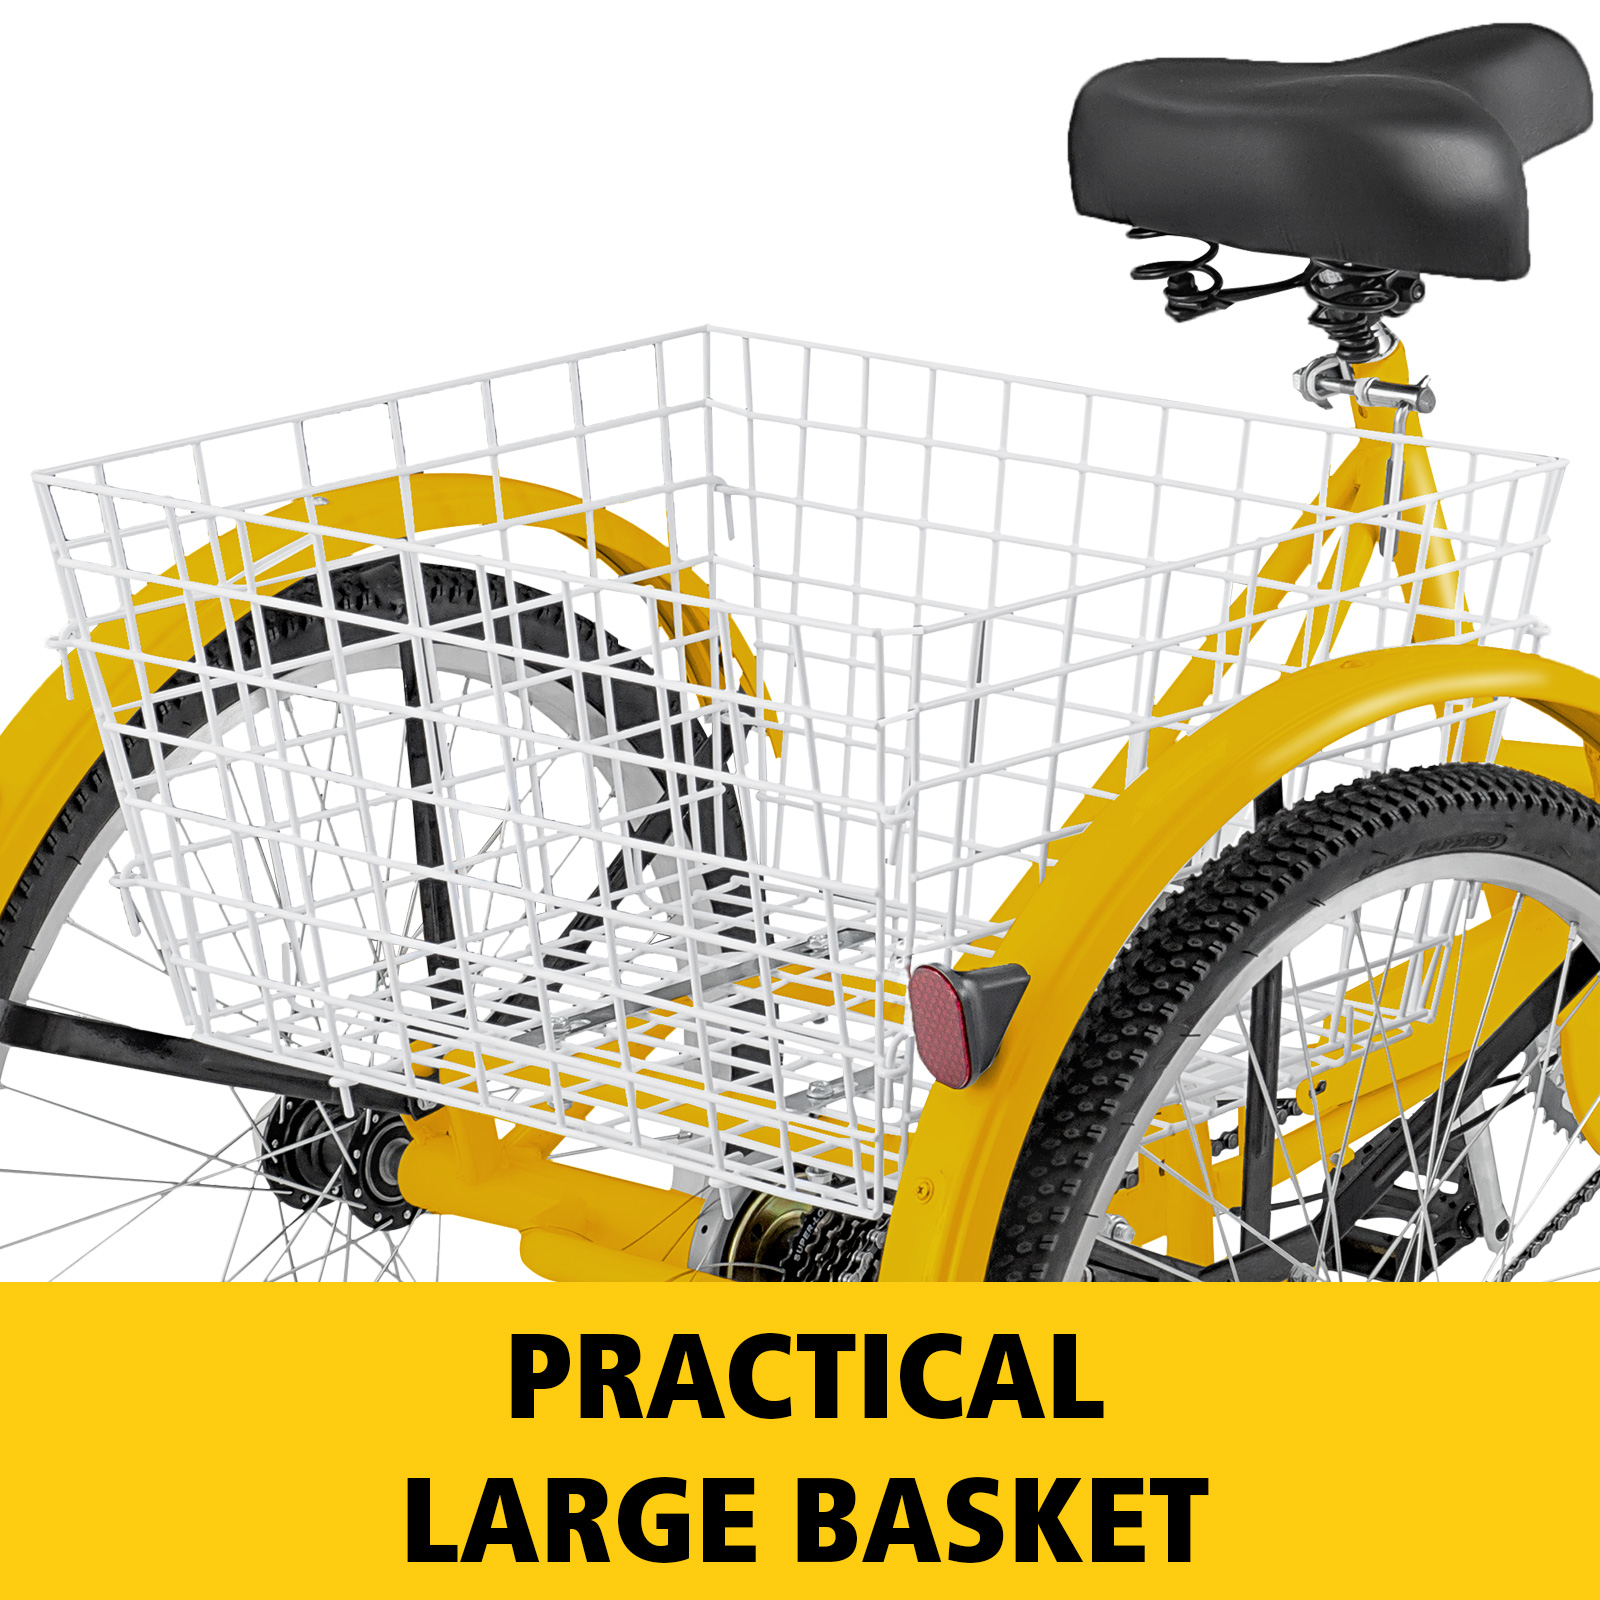 20-24-26-034-Adult-Tricycle-1-7-Speed-3-Wheel-Large-Basket-For-Shopping-Optional thumbnail 79